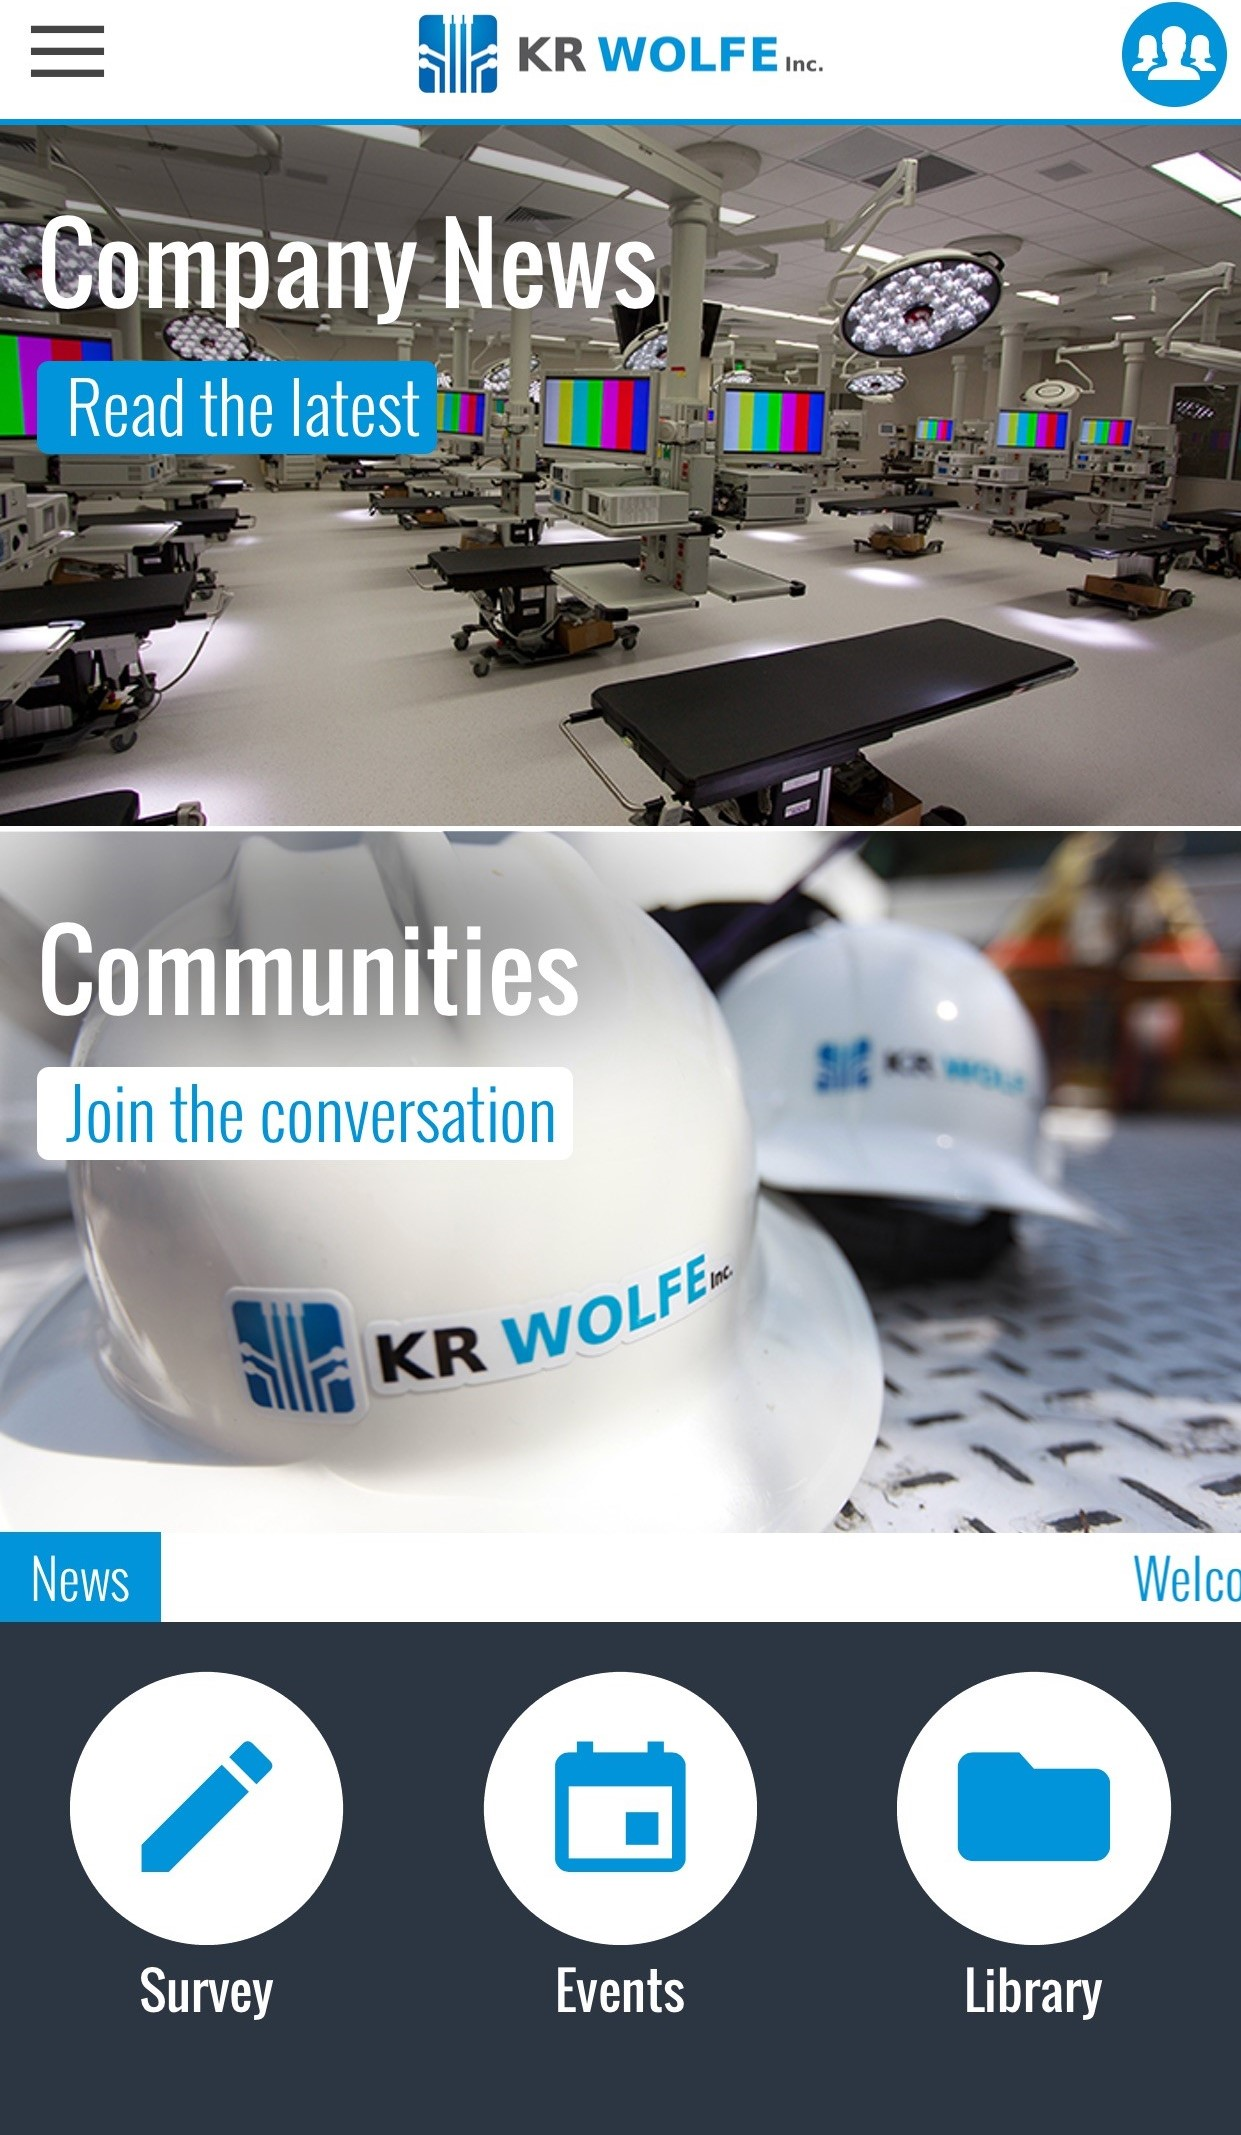 KR Wolfe Goes Digital and Welcomes Our Own Employee App